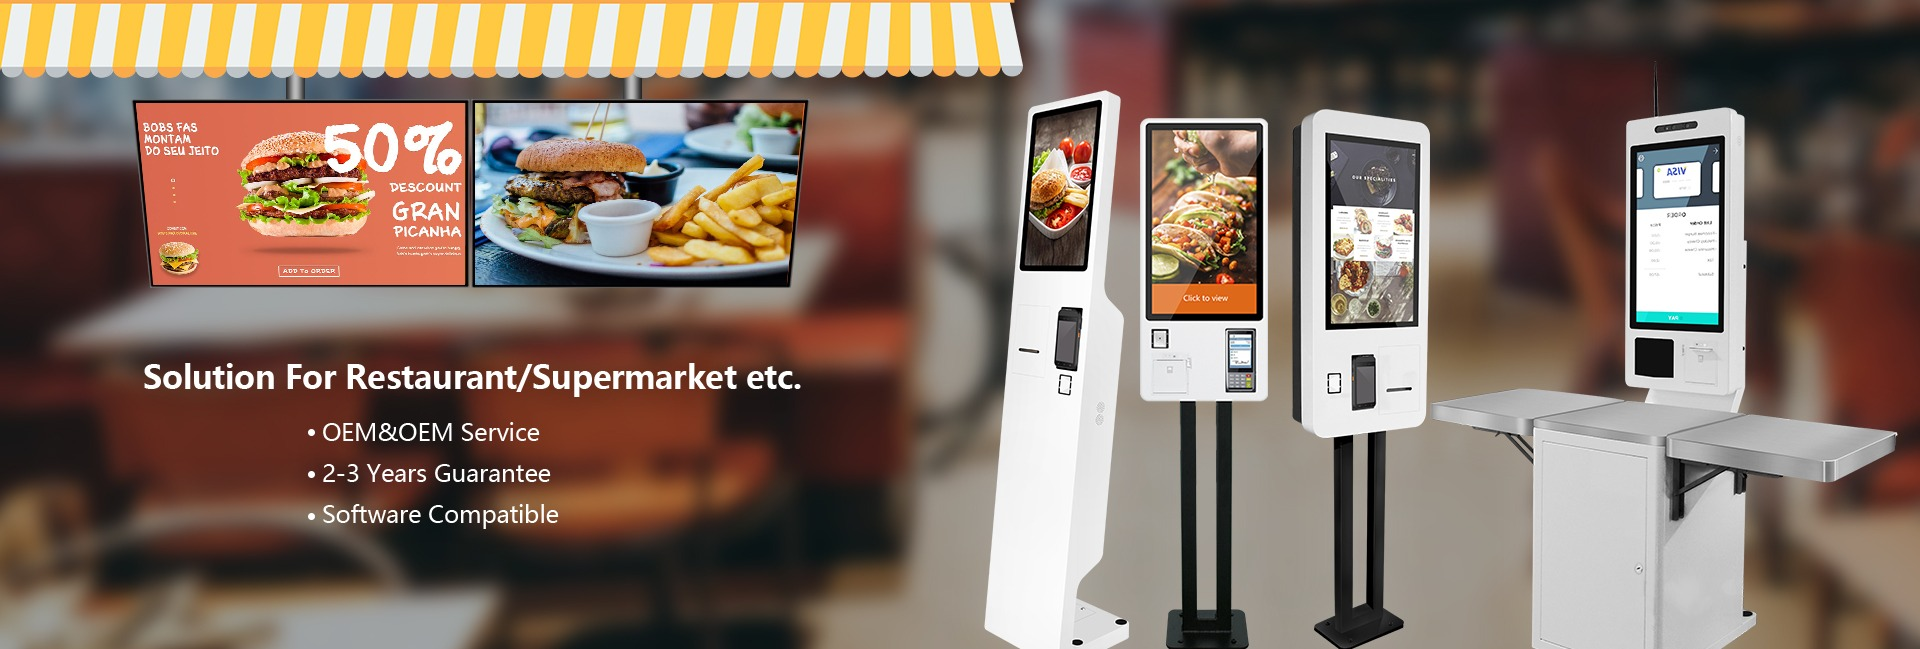 pdq machines for small businesses Digital Screens and self order kiosk